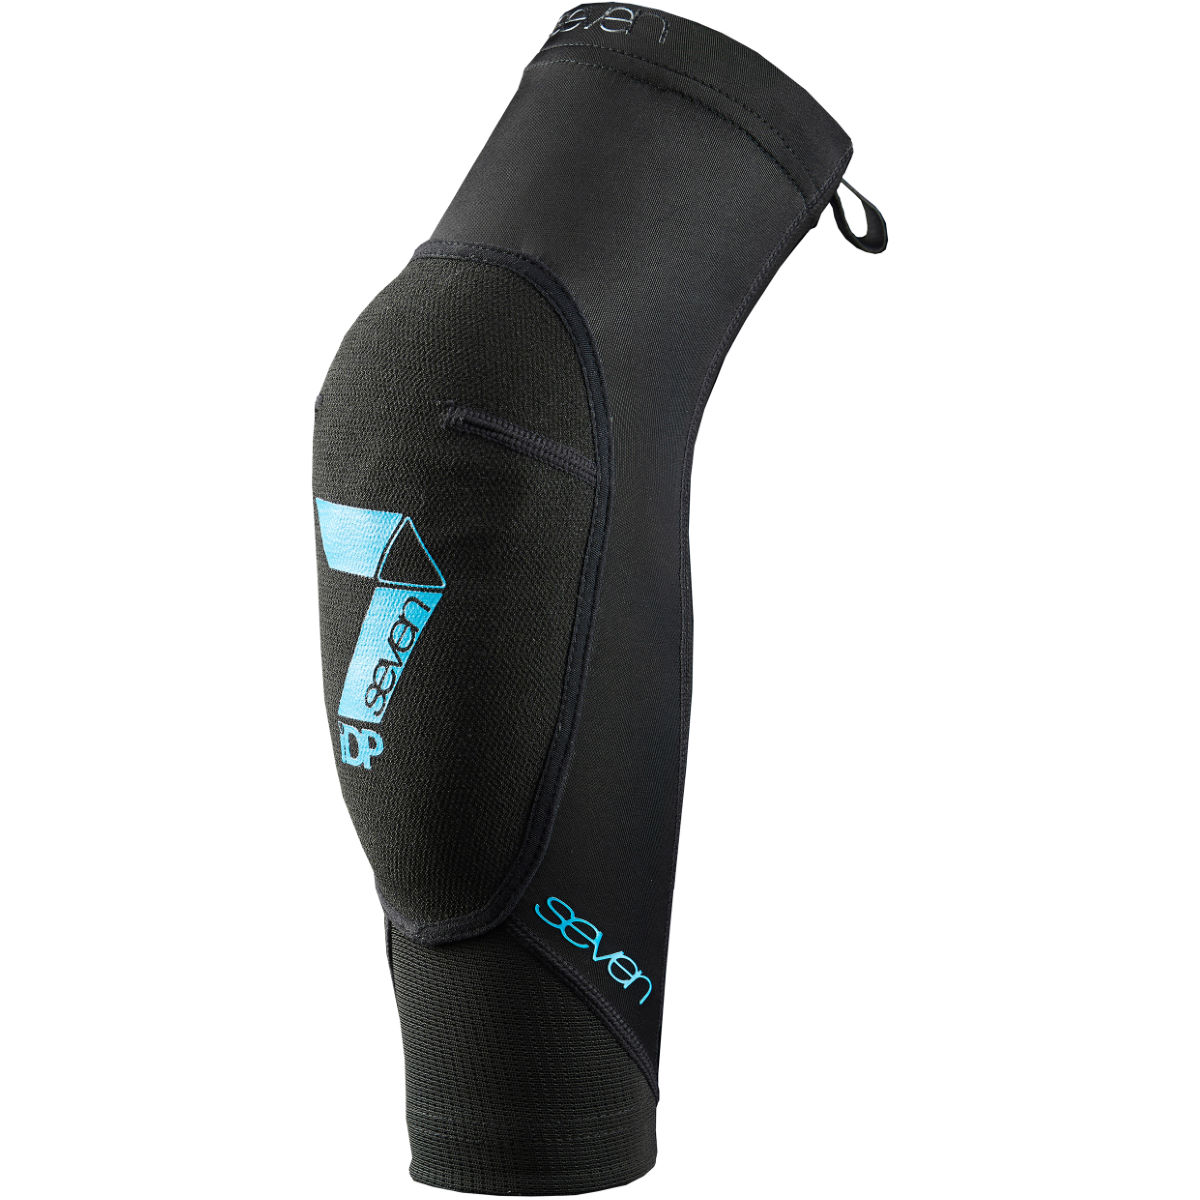 7 iDP Transition Elbow Pads - Coderas